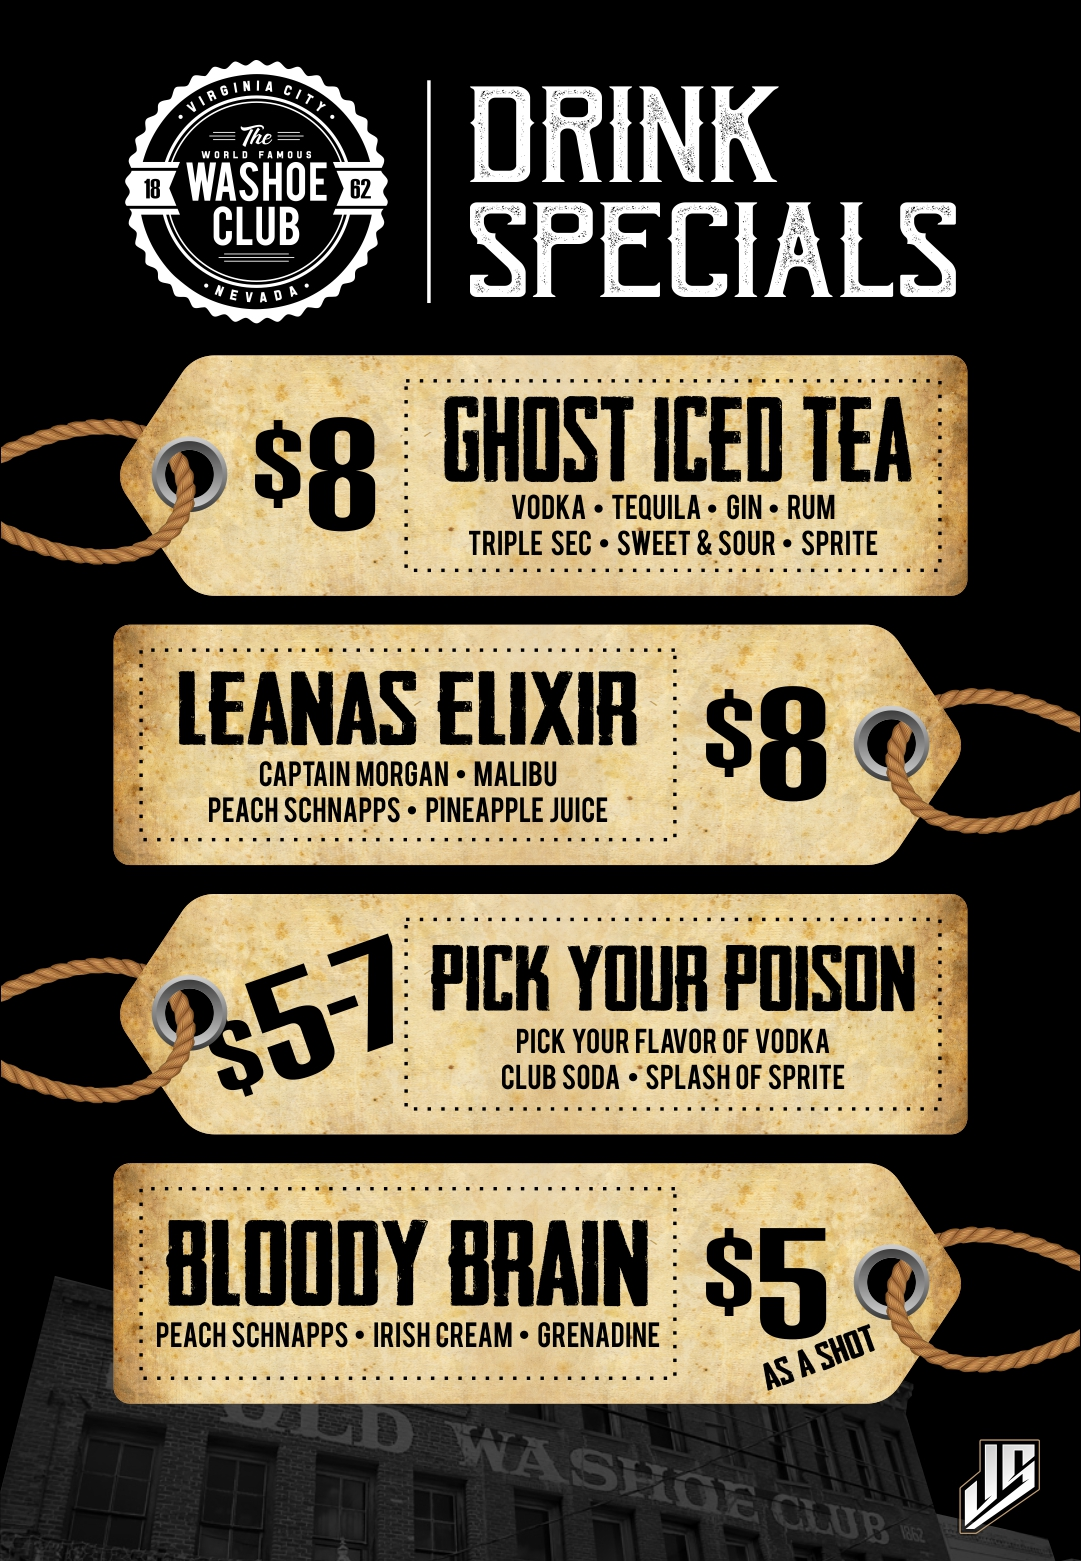 Washoe Club Drink Specials 2.jpg